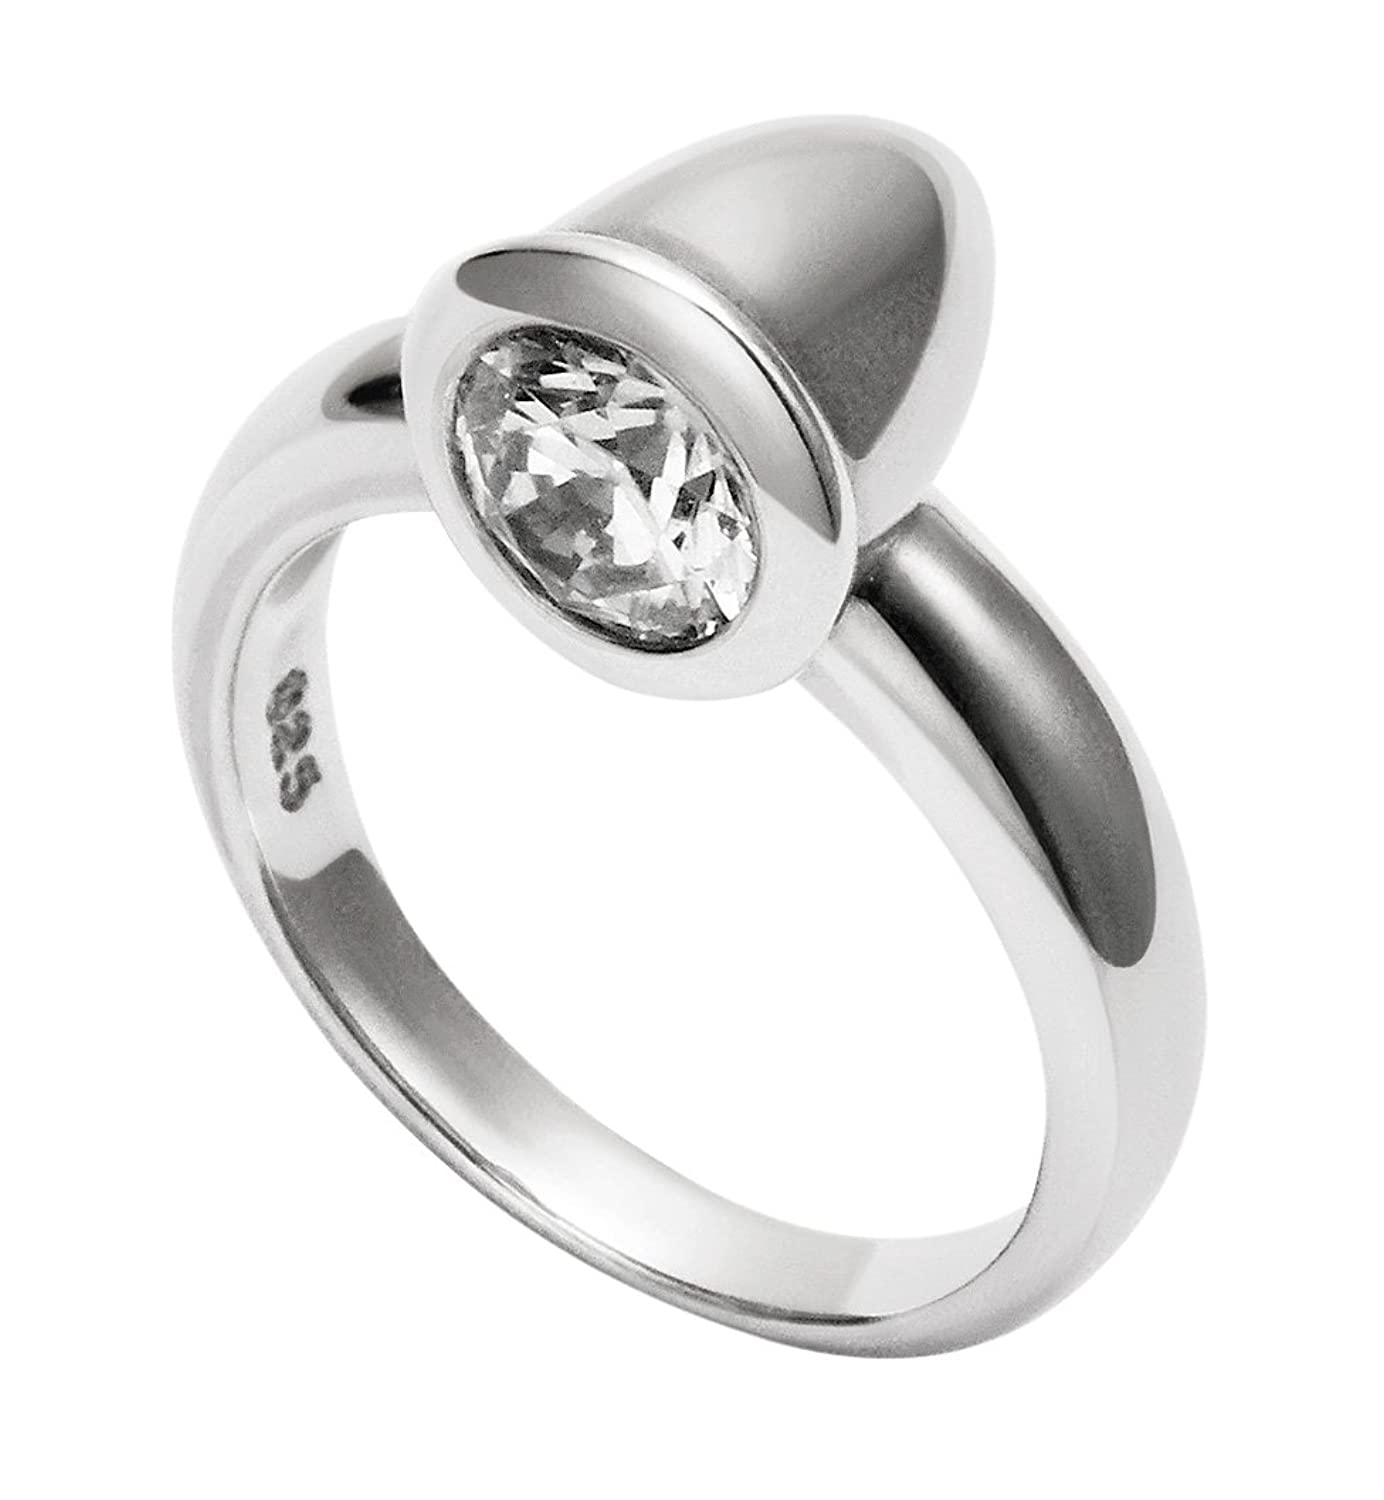 Sterling Silver HD Motorcycle Headlight Ring